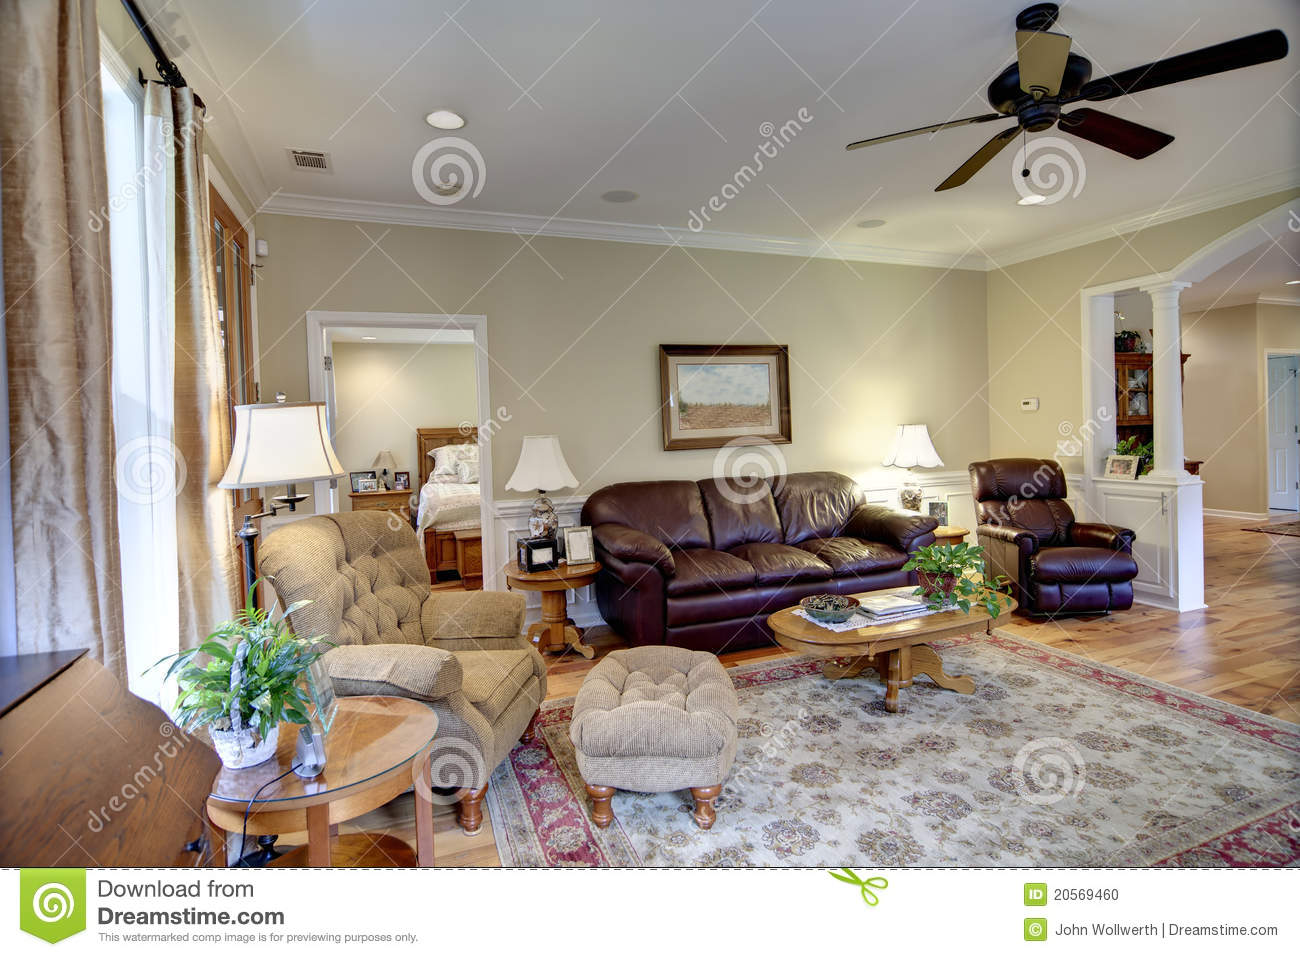 Upscale Ceiling Fan Upscale Living Room Stock Photo Image Of Estate Beige 20569460